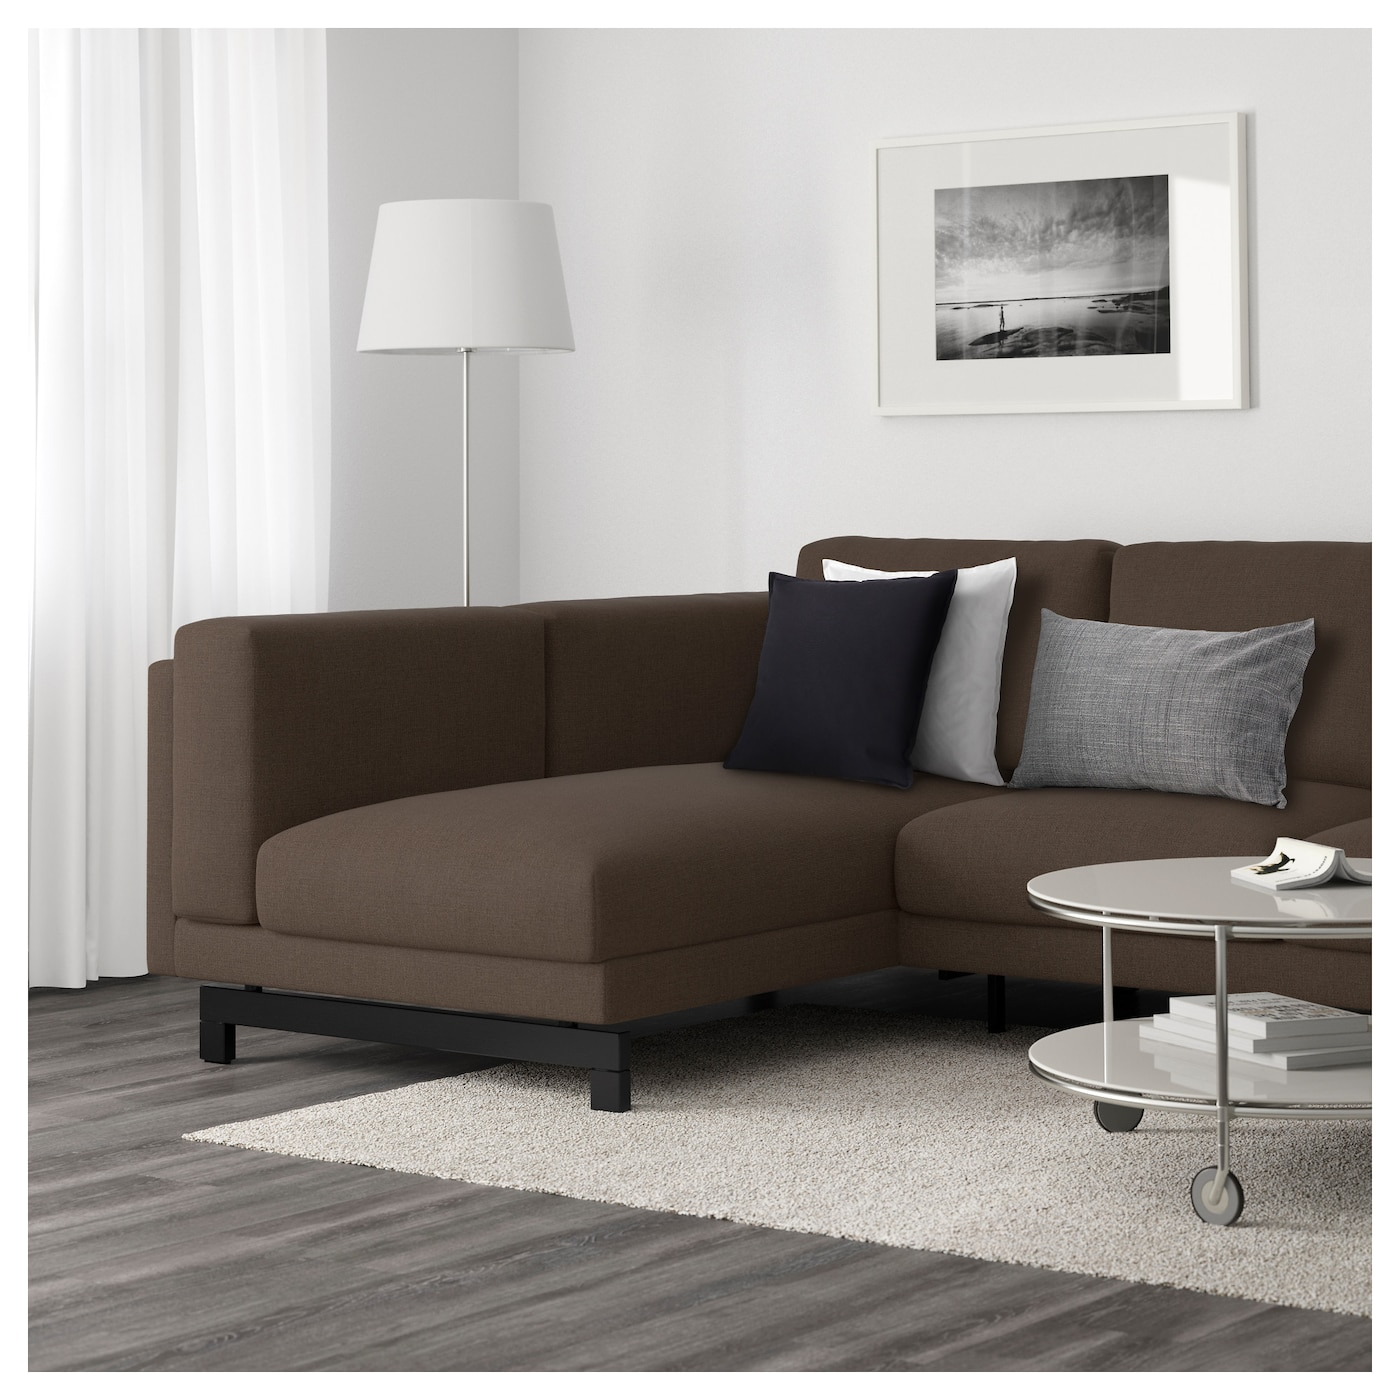 Nockeby two seat sofa w chaise longue left ten brown wood for Sofa nockeby